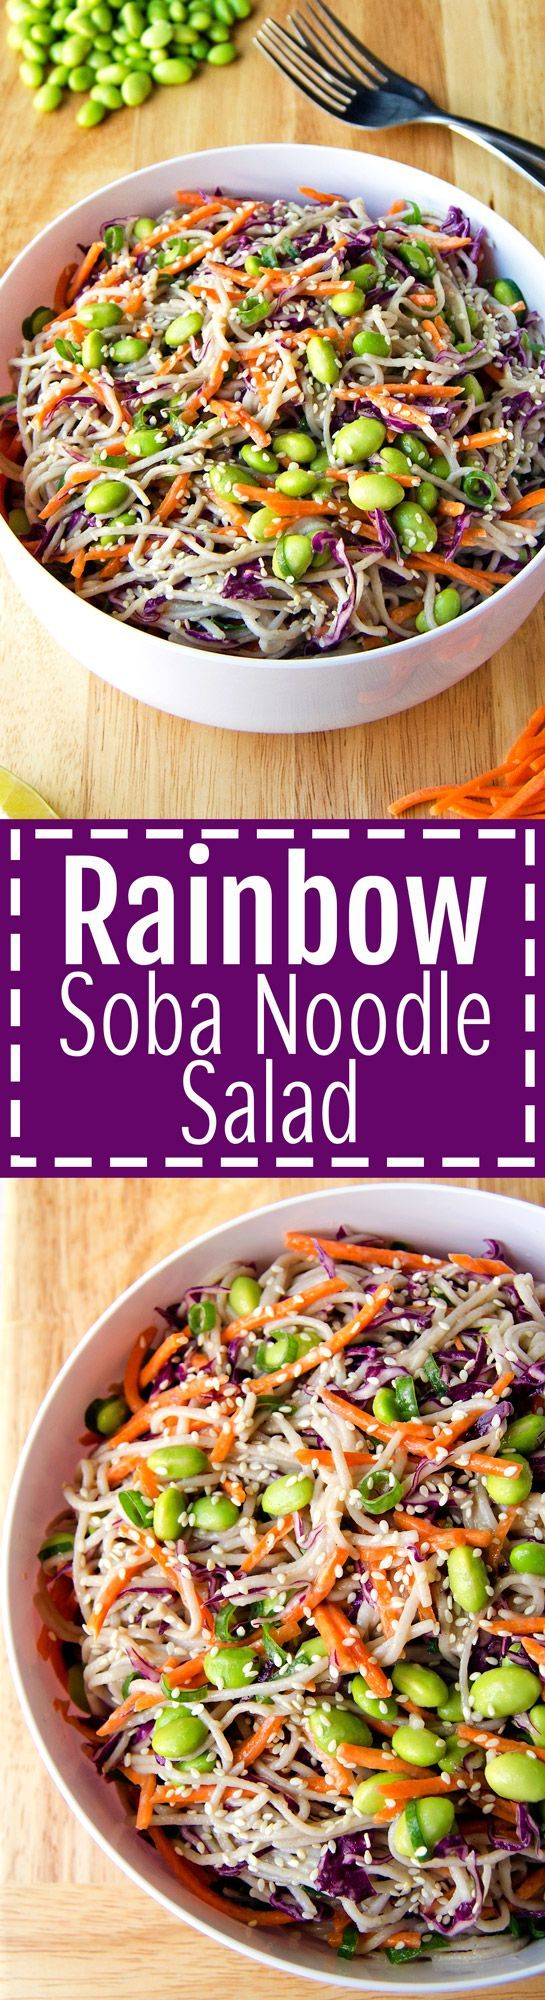 Rainbow Soba Noodle Salad – Colorful veggies and chewy soba noodles all tossed together with a flavorful sesame garlic and lime dressing. It's super easy and can be made ahead of time too! (Vegan & GF) | RECIPE at NomingthruLife.com